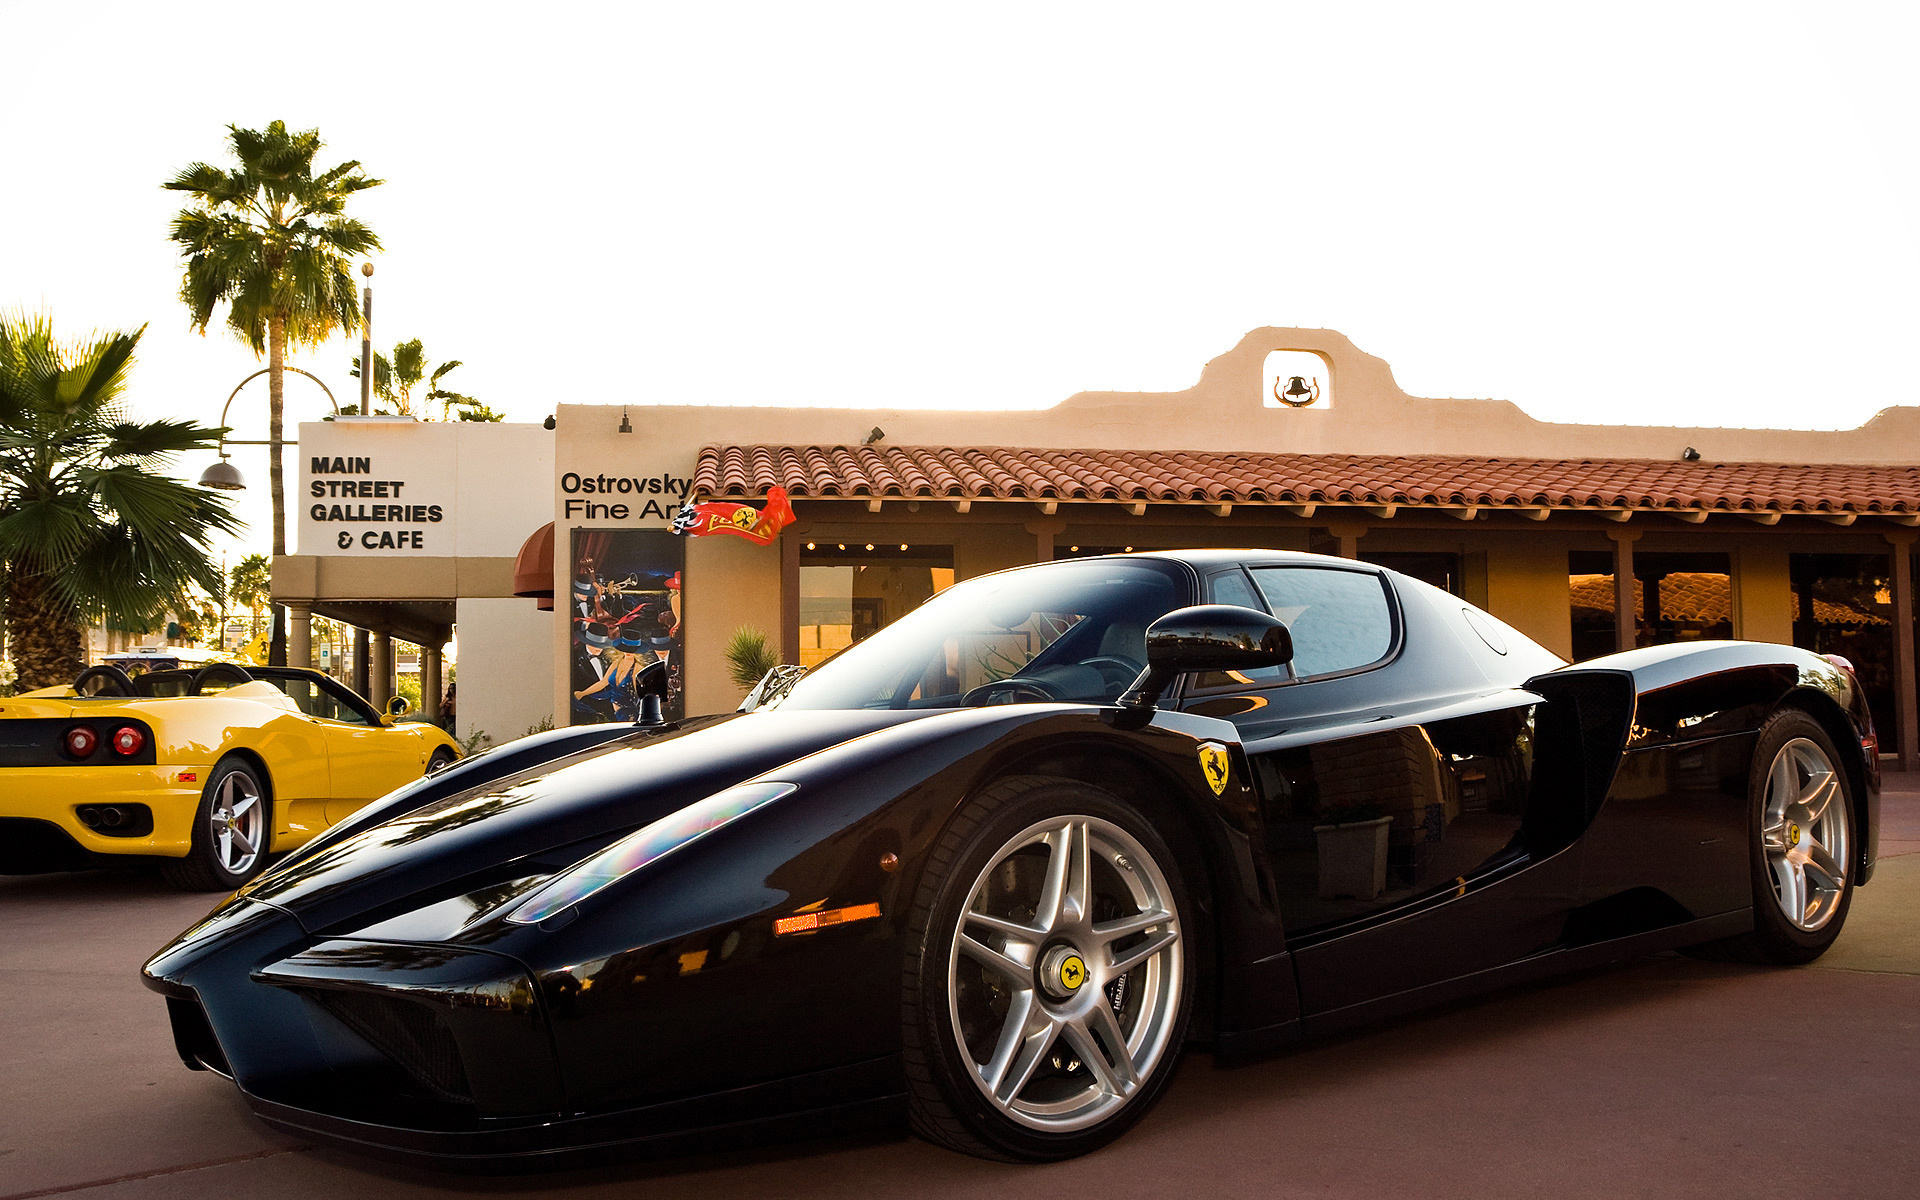 Ferrari Enzo 360 Vehicles Cars Auto Supercar Black Stance Exotic Wallpaper 1920x1200 27822 Wallpaperup